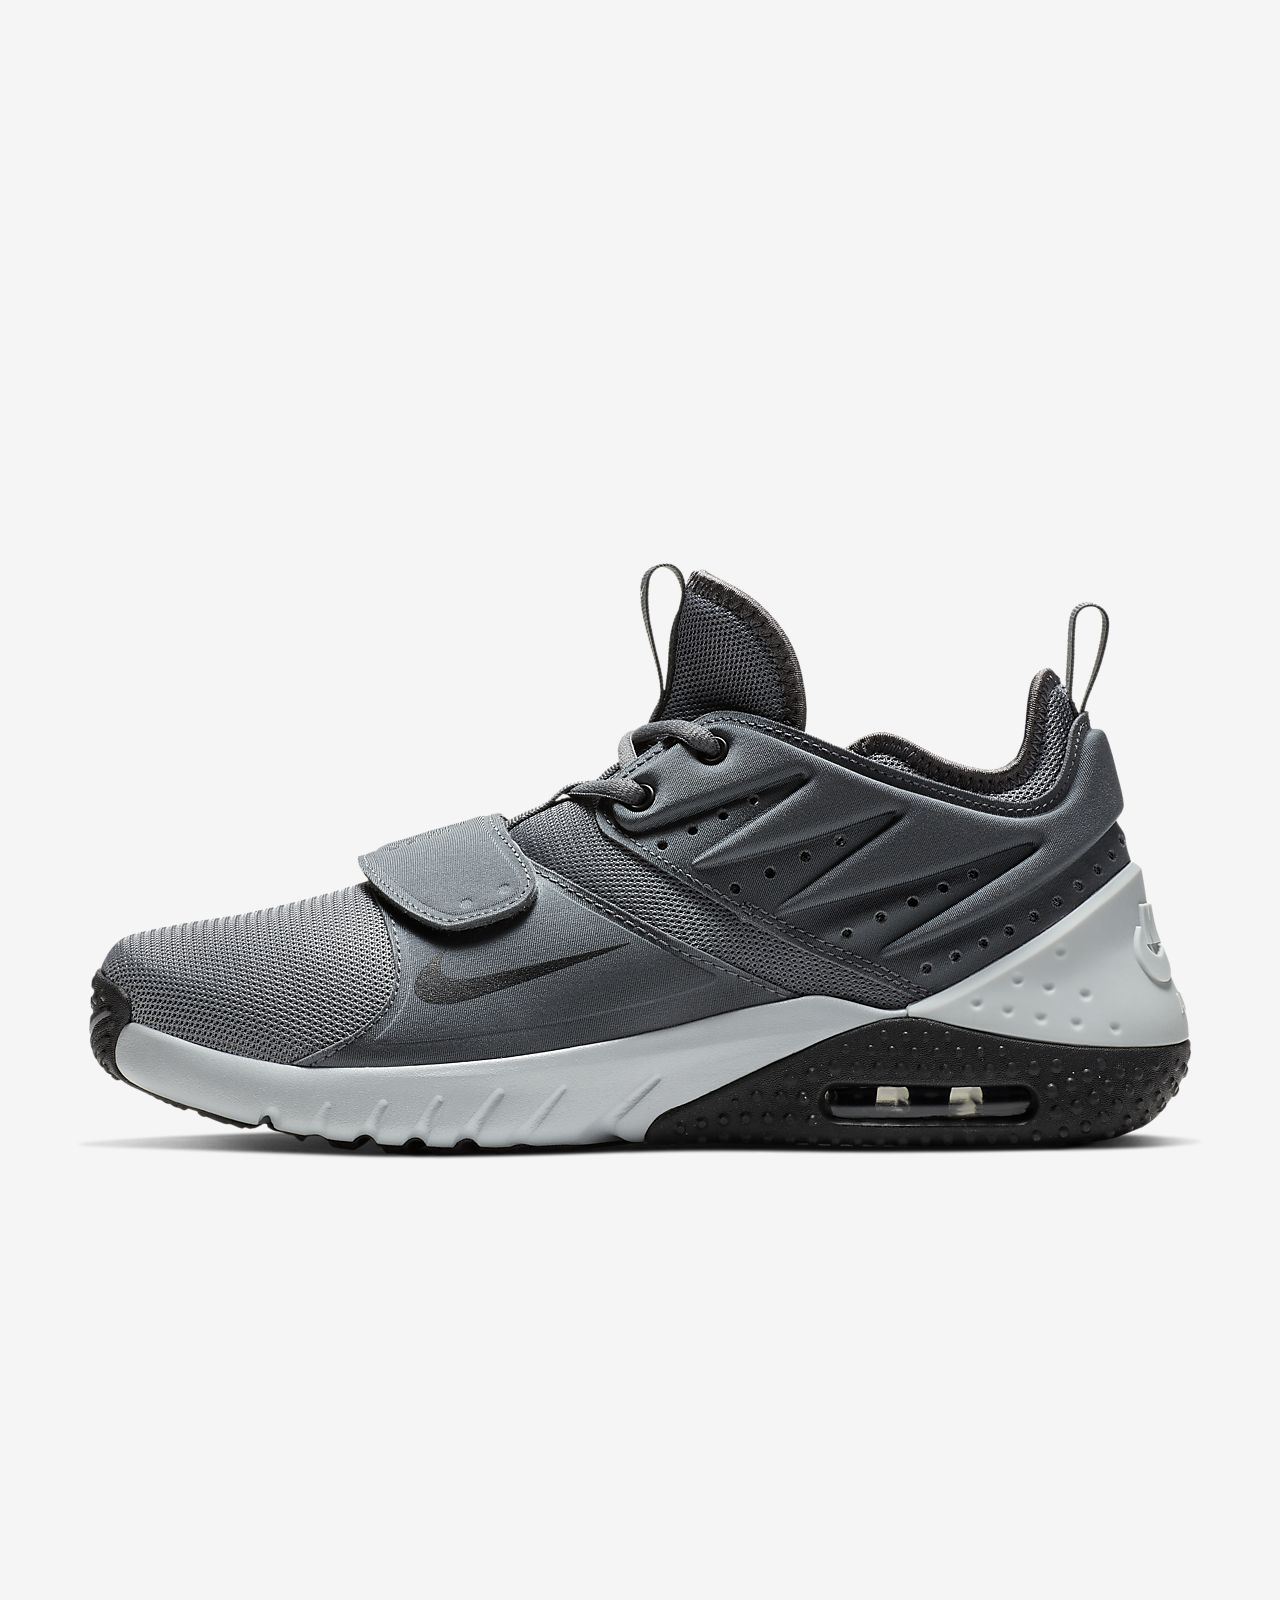 official photos 37146 7c069 Men s Gym Training Workout Shoe. Nike Air Max Trainer 1